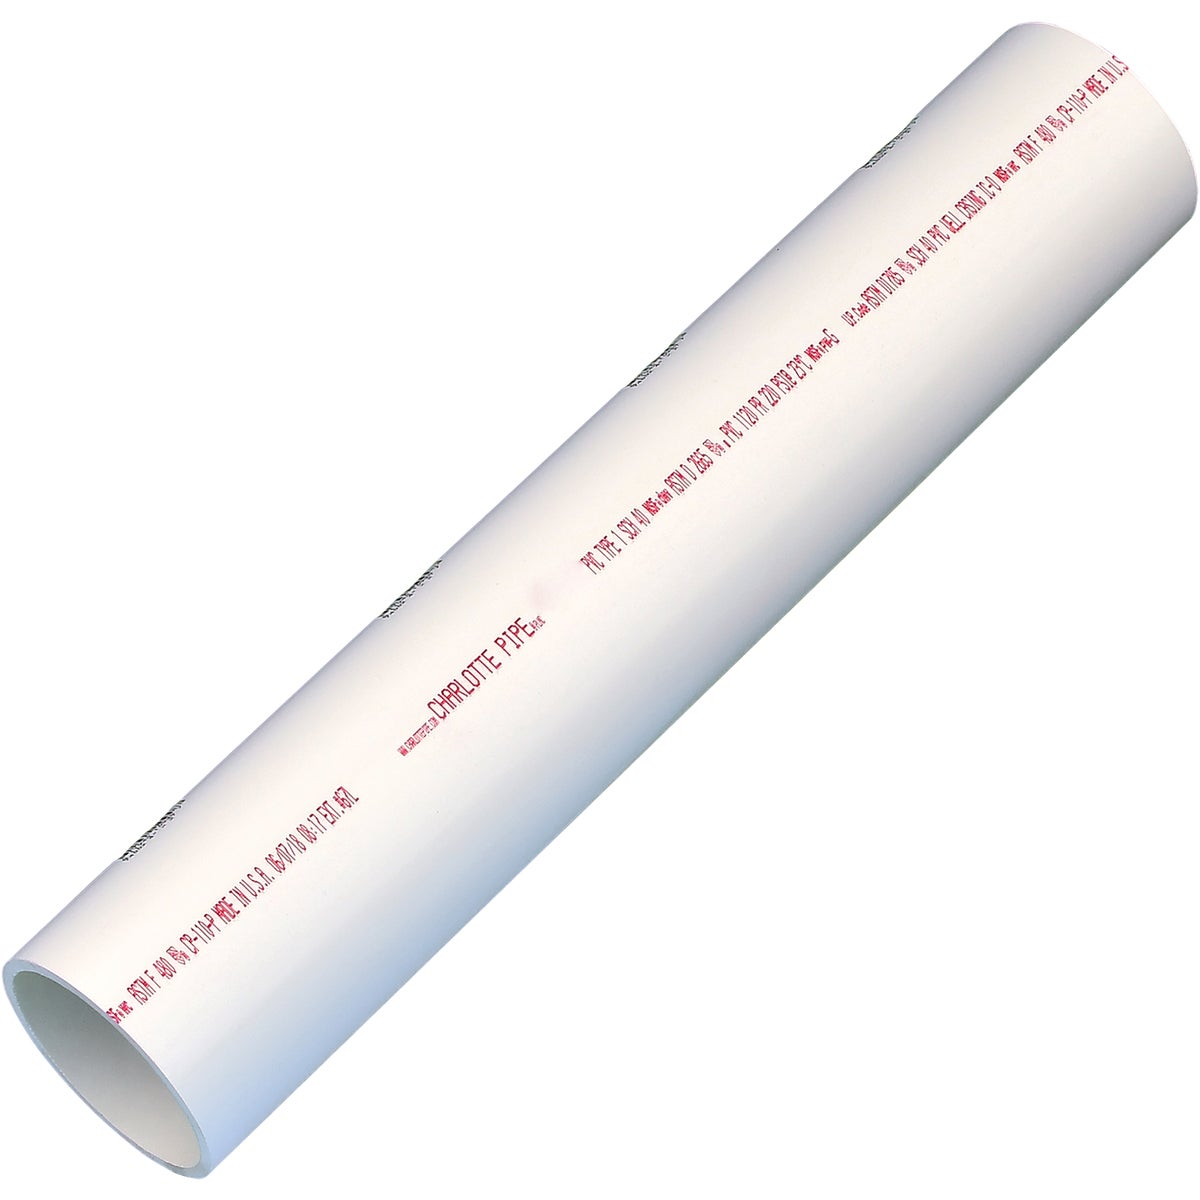 1-1/4X2' SCH 40 PVC PIPE - 3101172 by Genova Inc